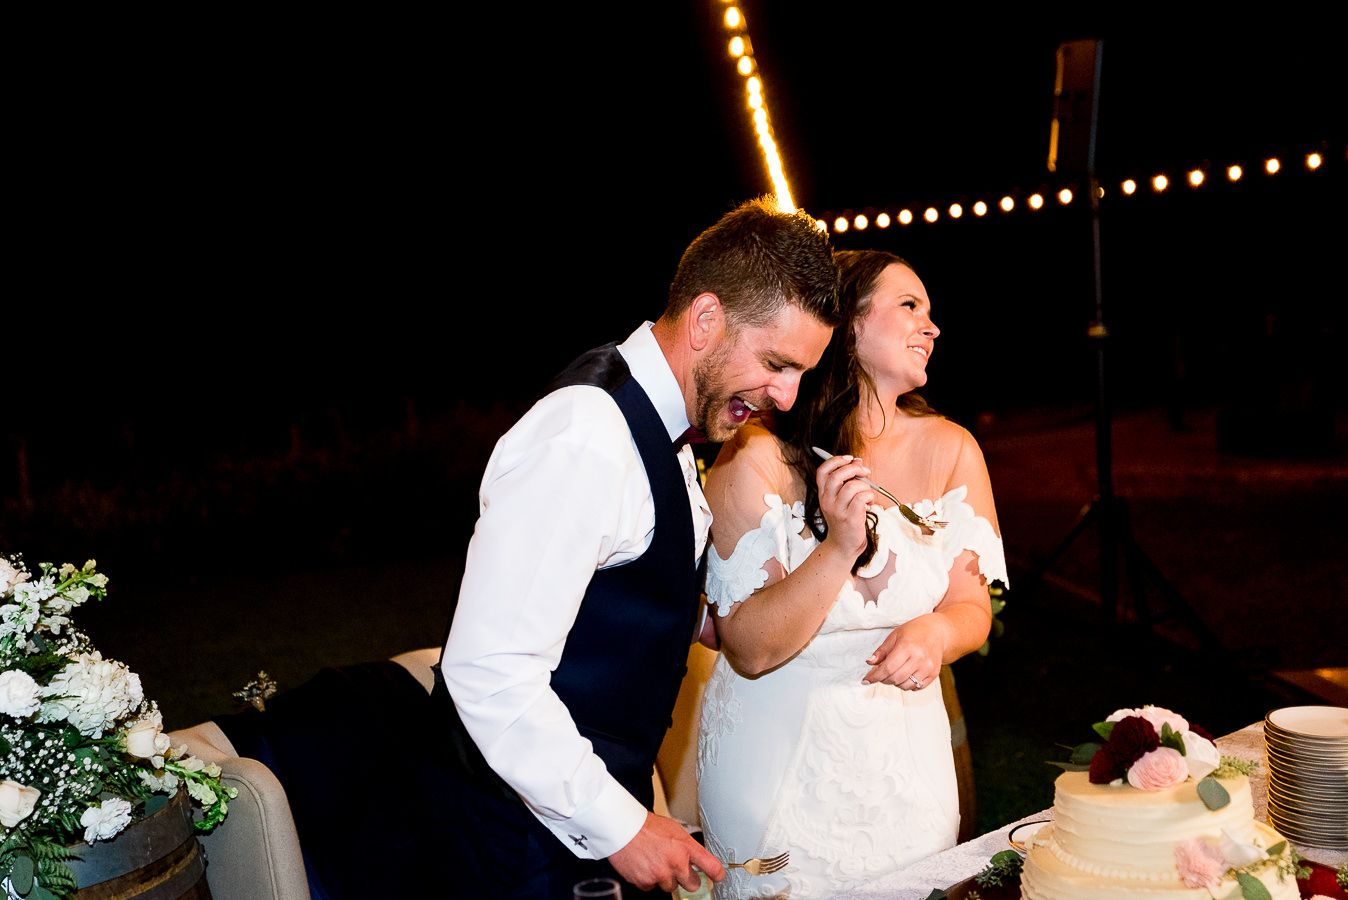 groom laughs as bride feeds him wedding cake at outdoor wedding reception at Pennyroyal Farm